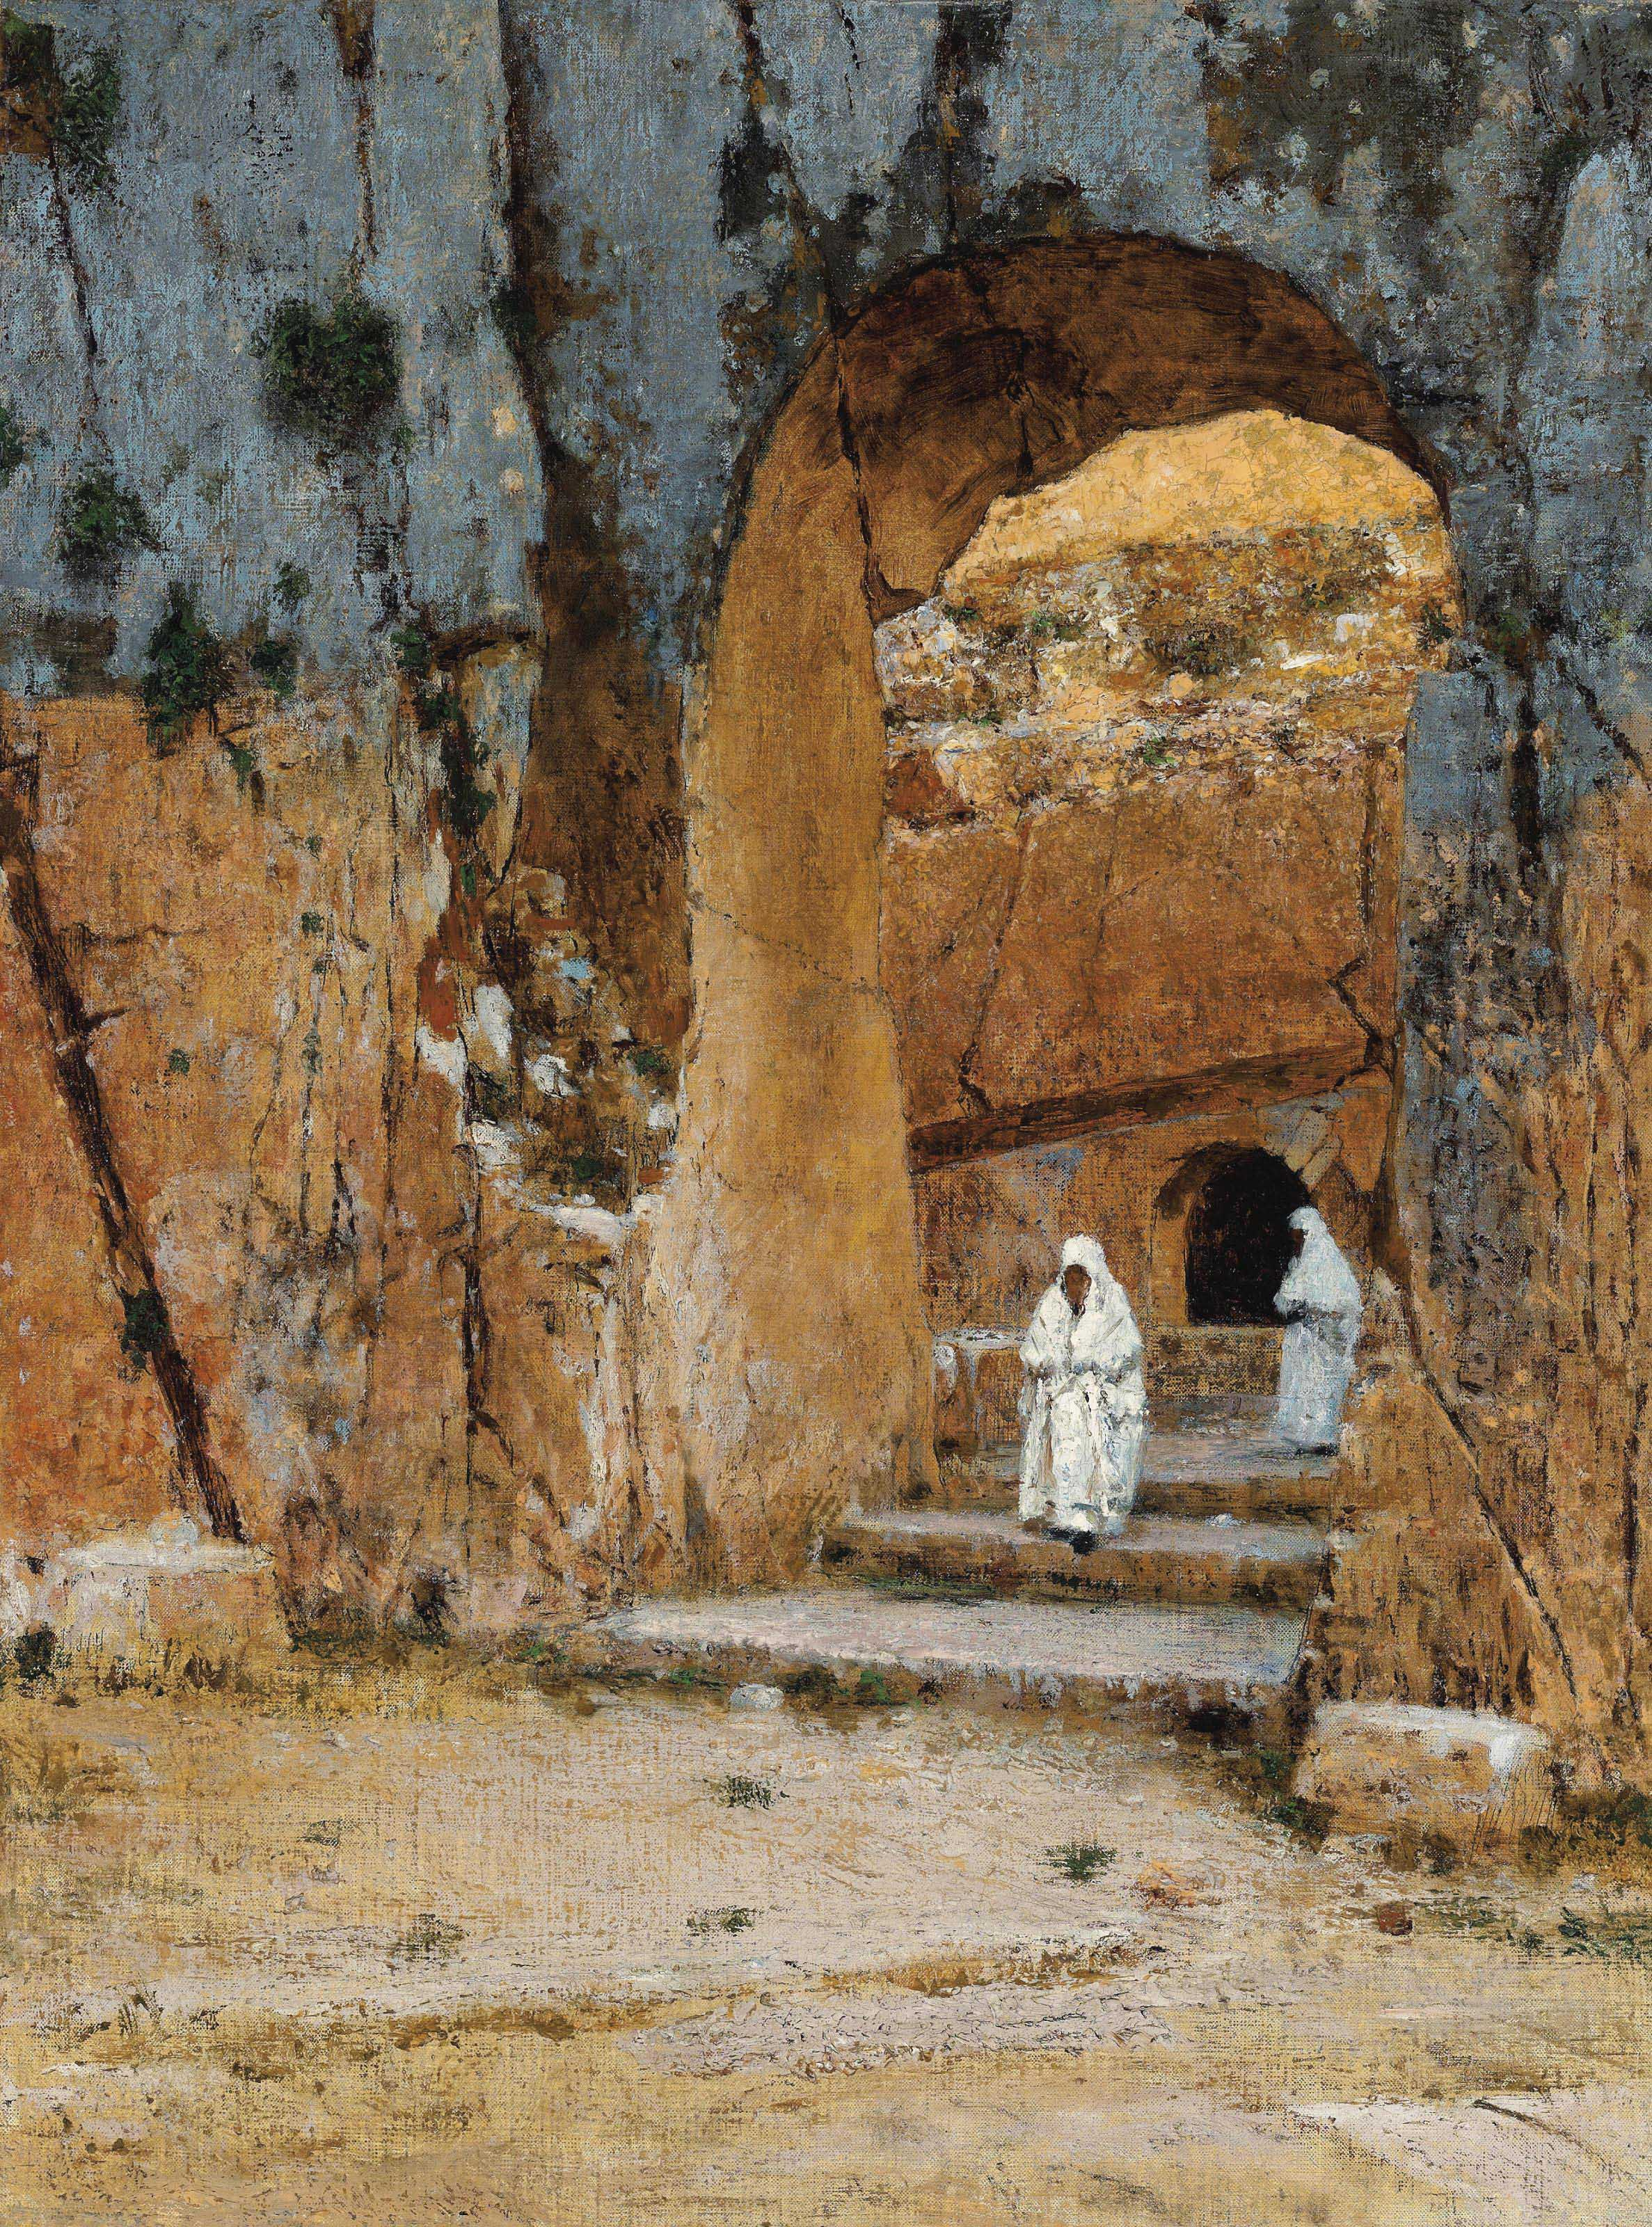 Entrance to the Tomb of the Kings